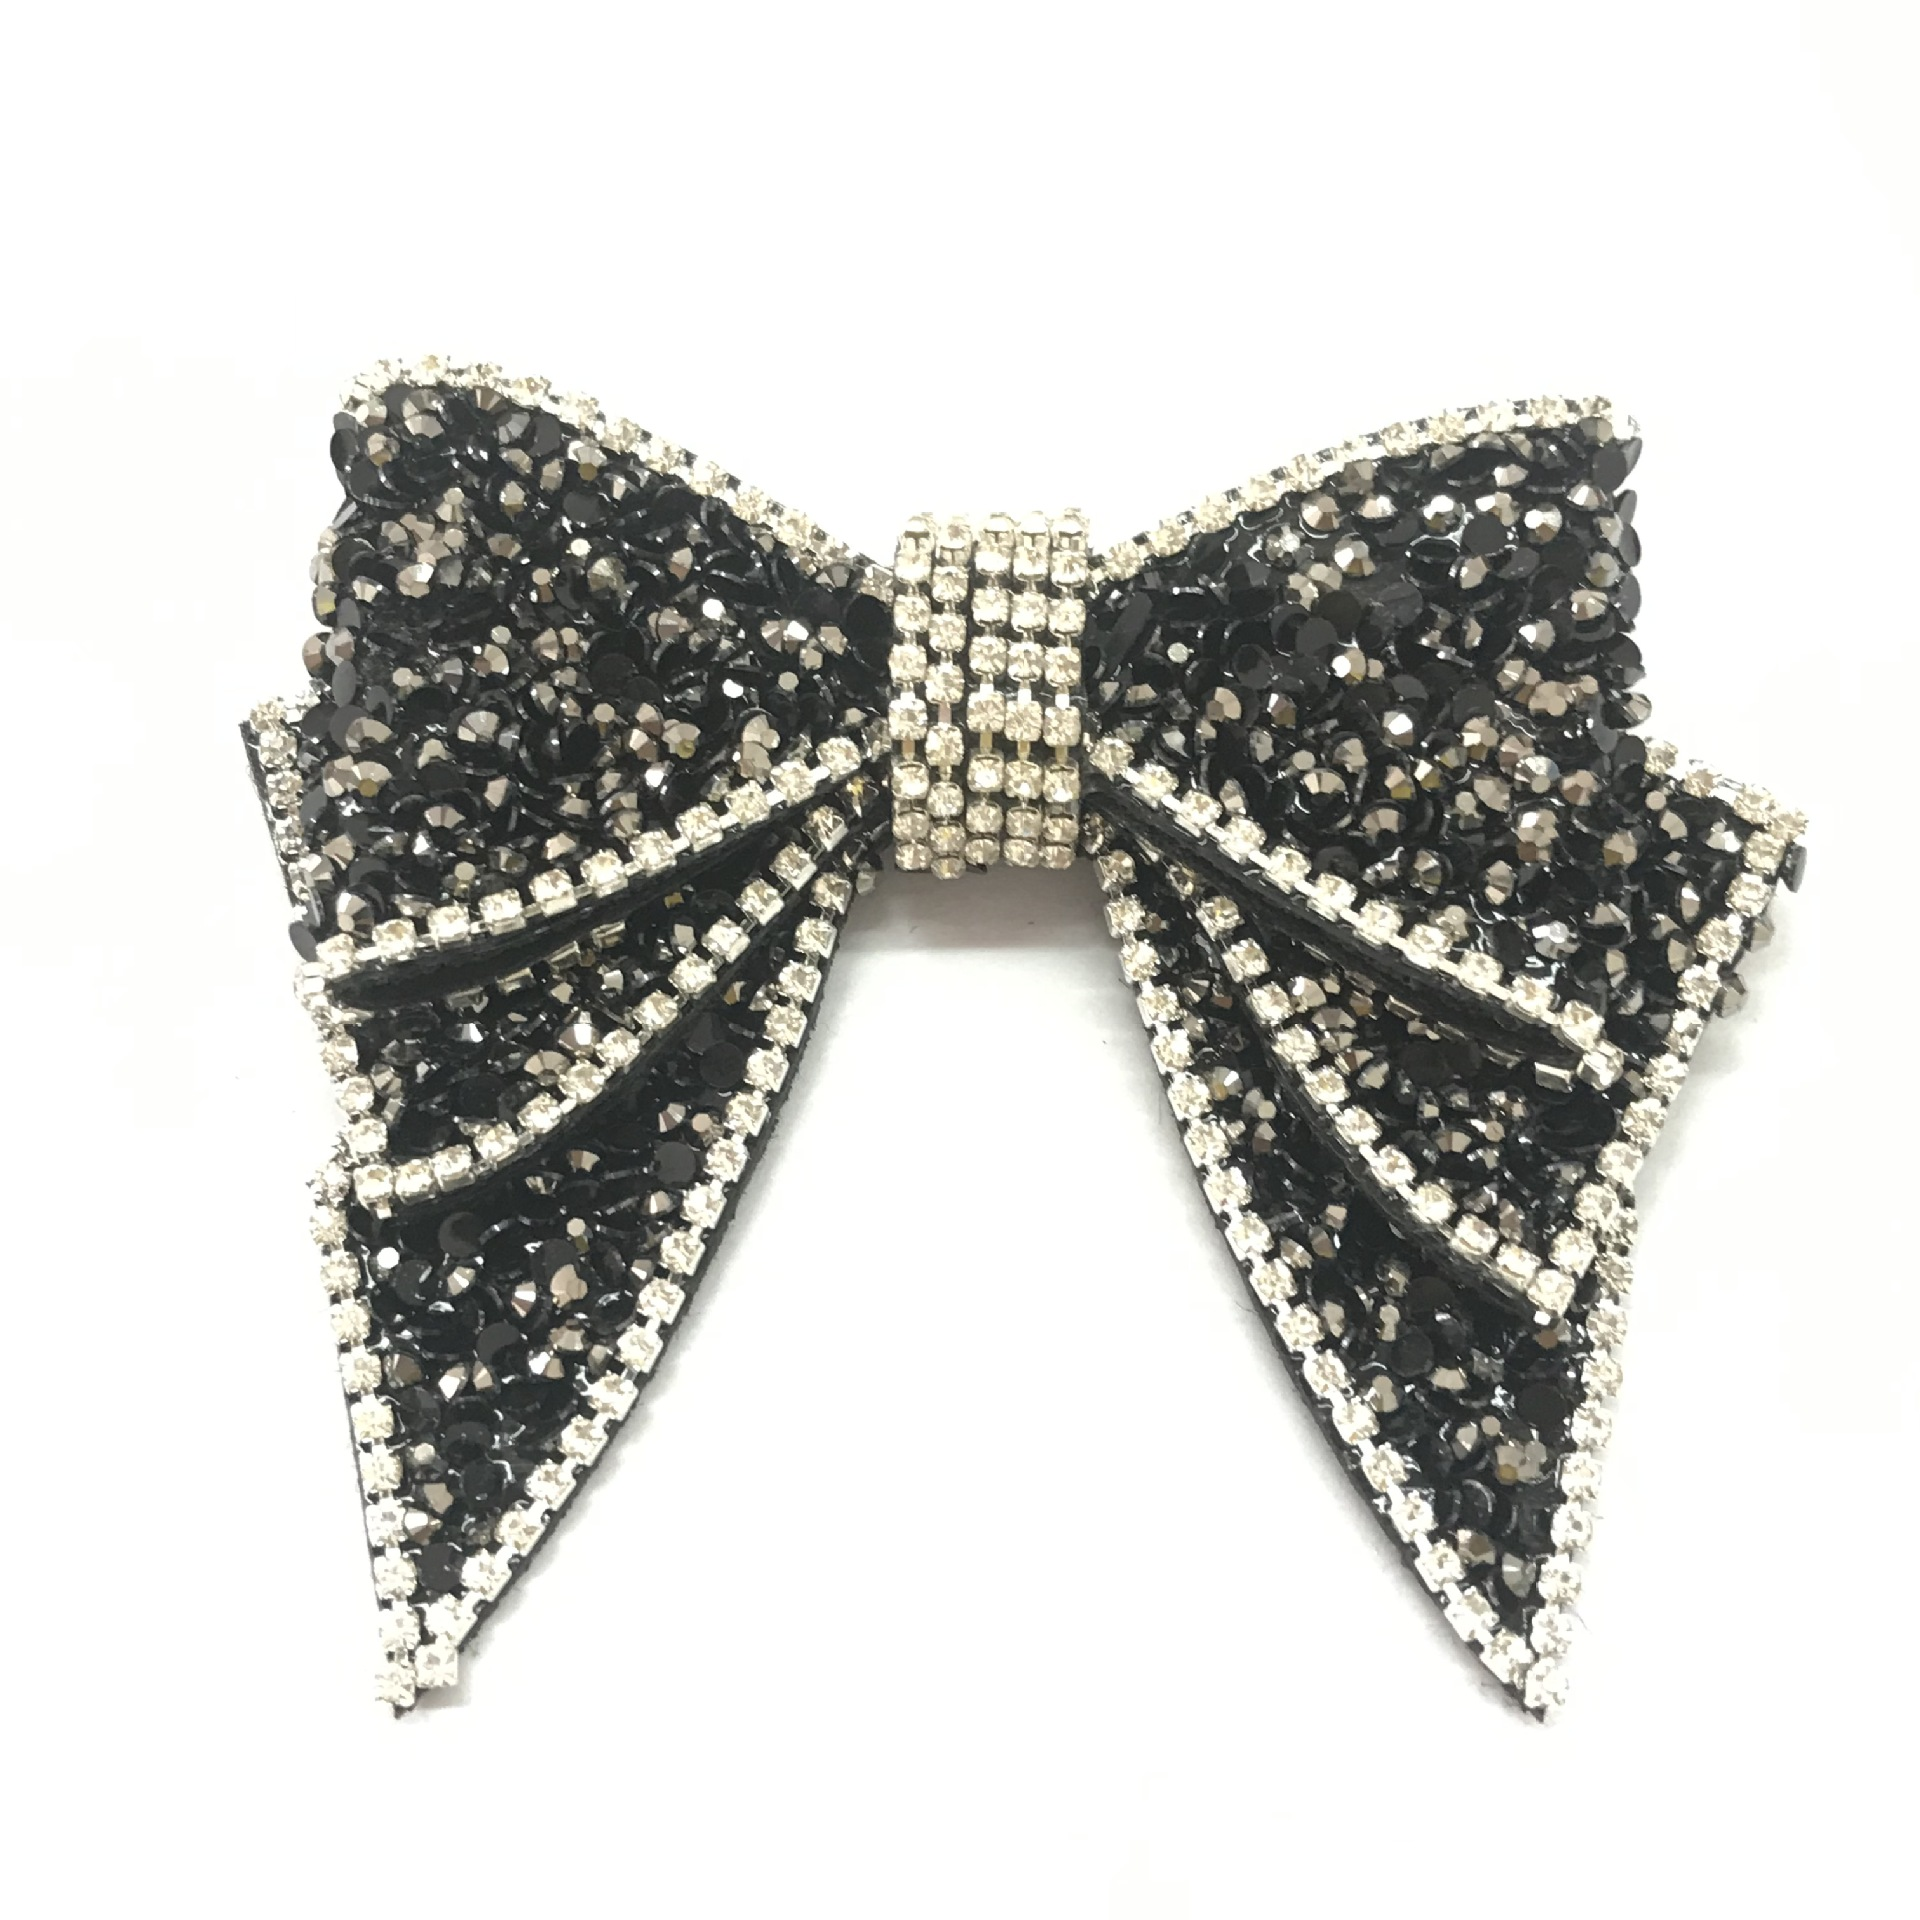 Water Drill Black Butterfly Shoes, Flowers, Accessories, Diy Clothing Accessories, Handmade Accessories, Accessories.